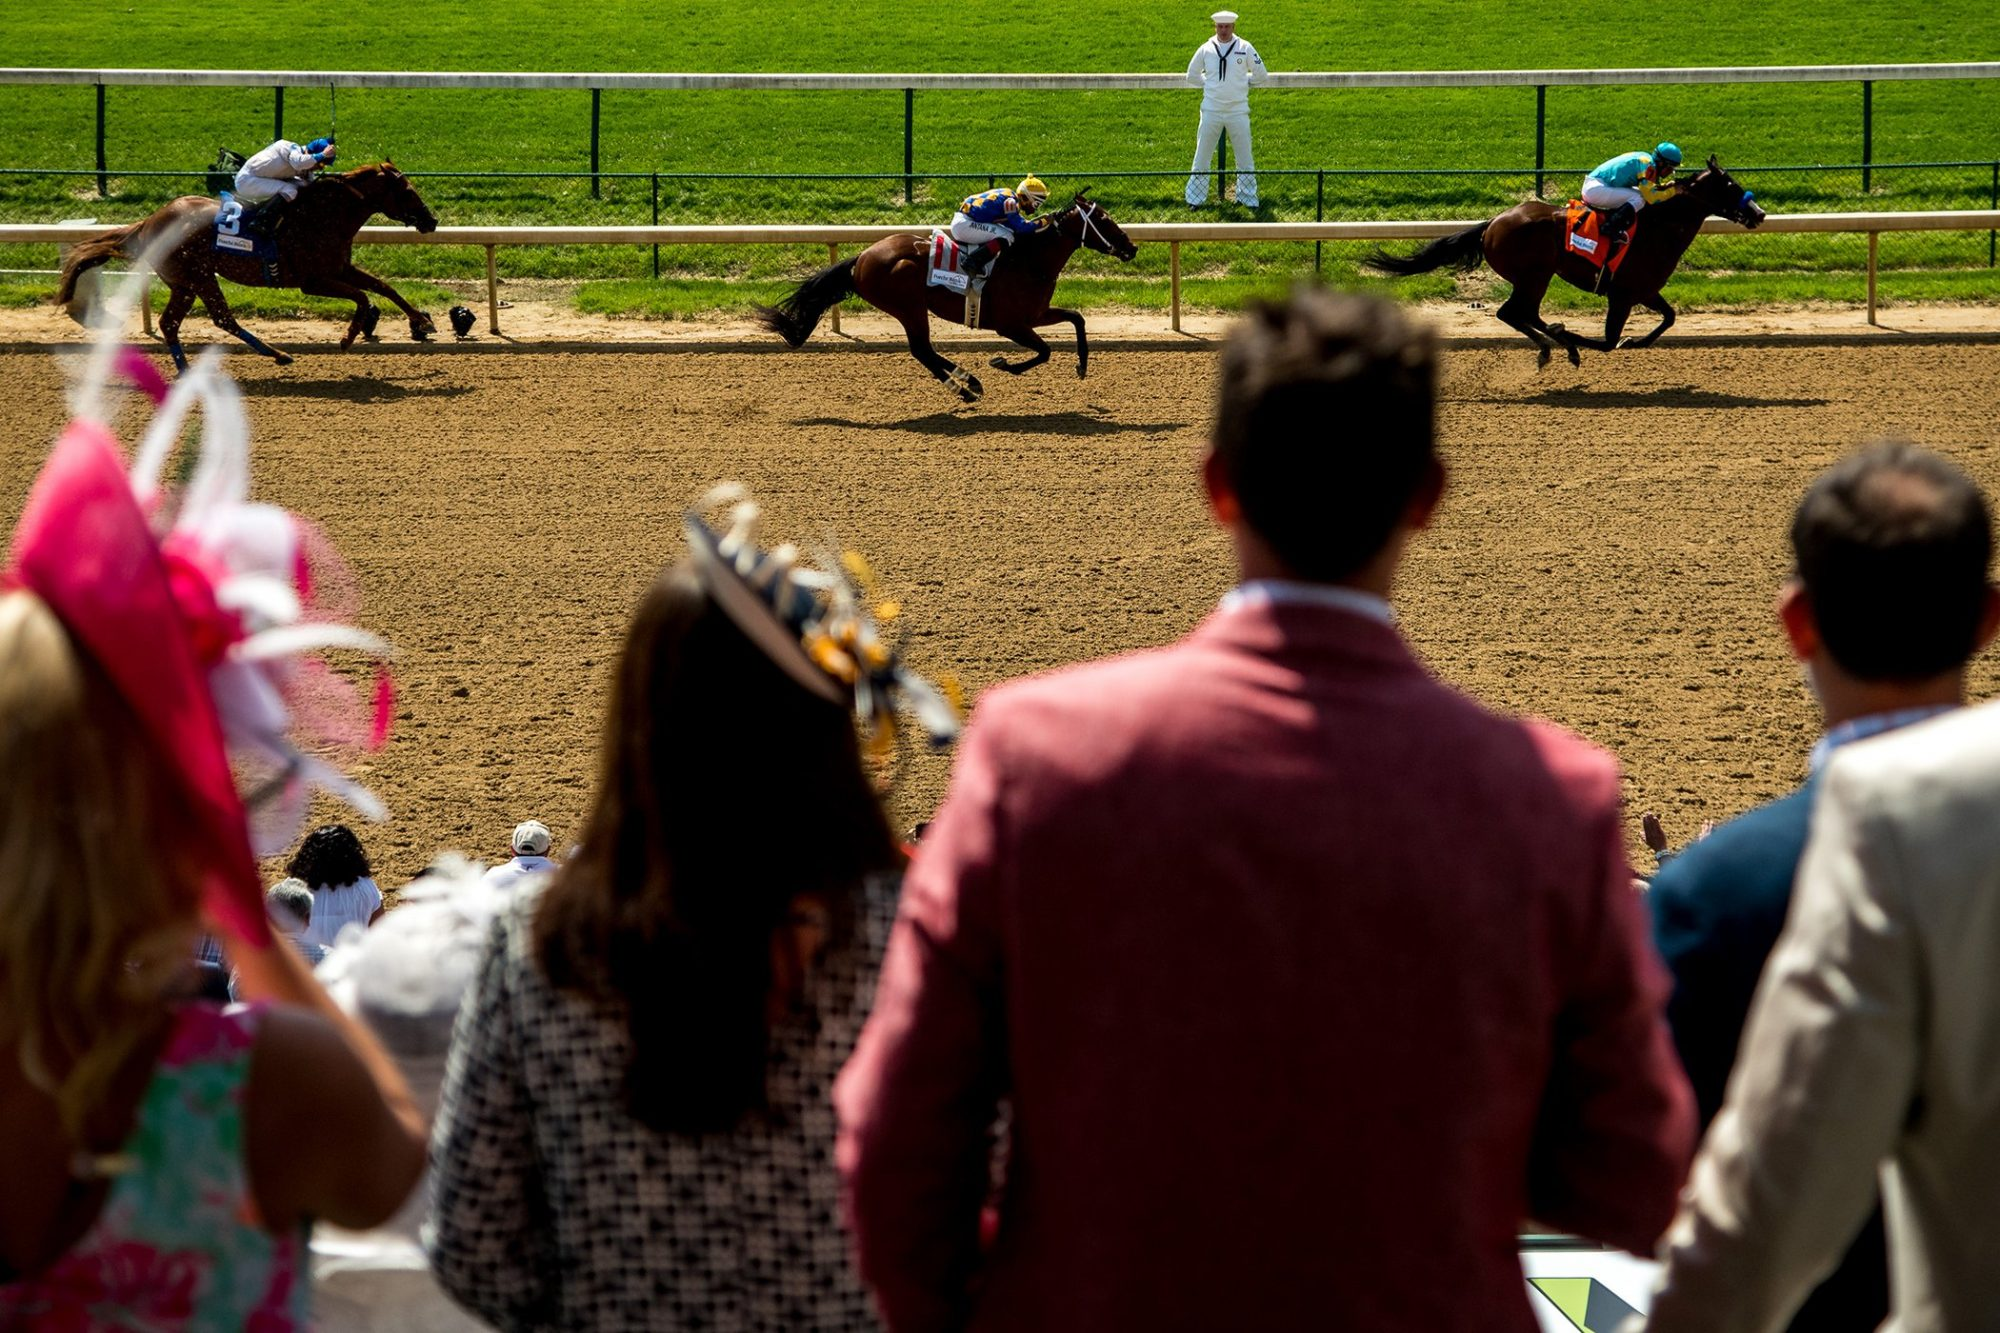 Fans watch an undercard race on Kentucky Derby Day on May 7, 2016 in Louisville, Kentucky.